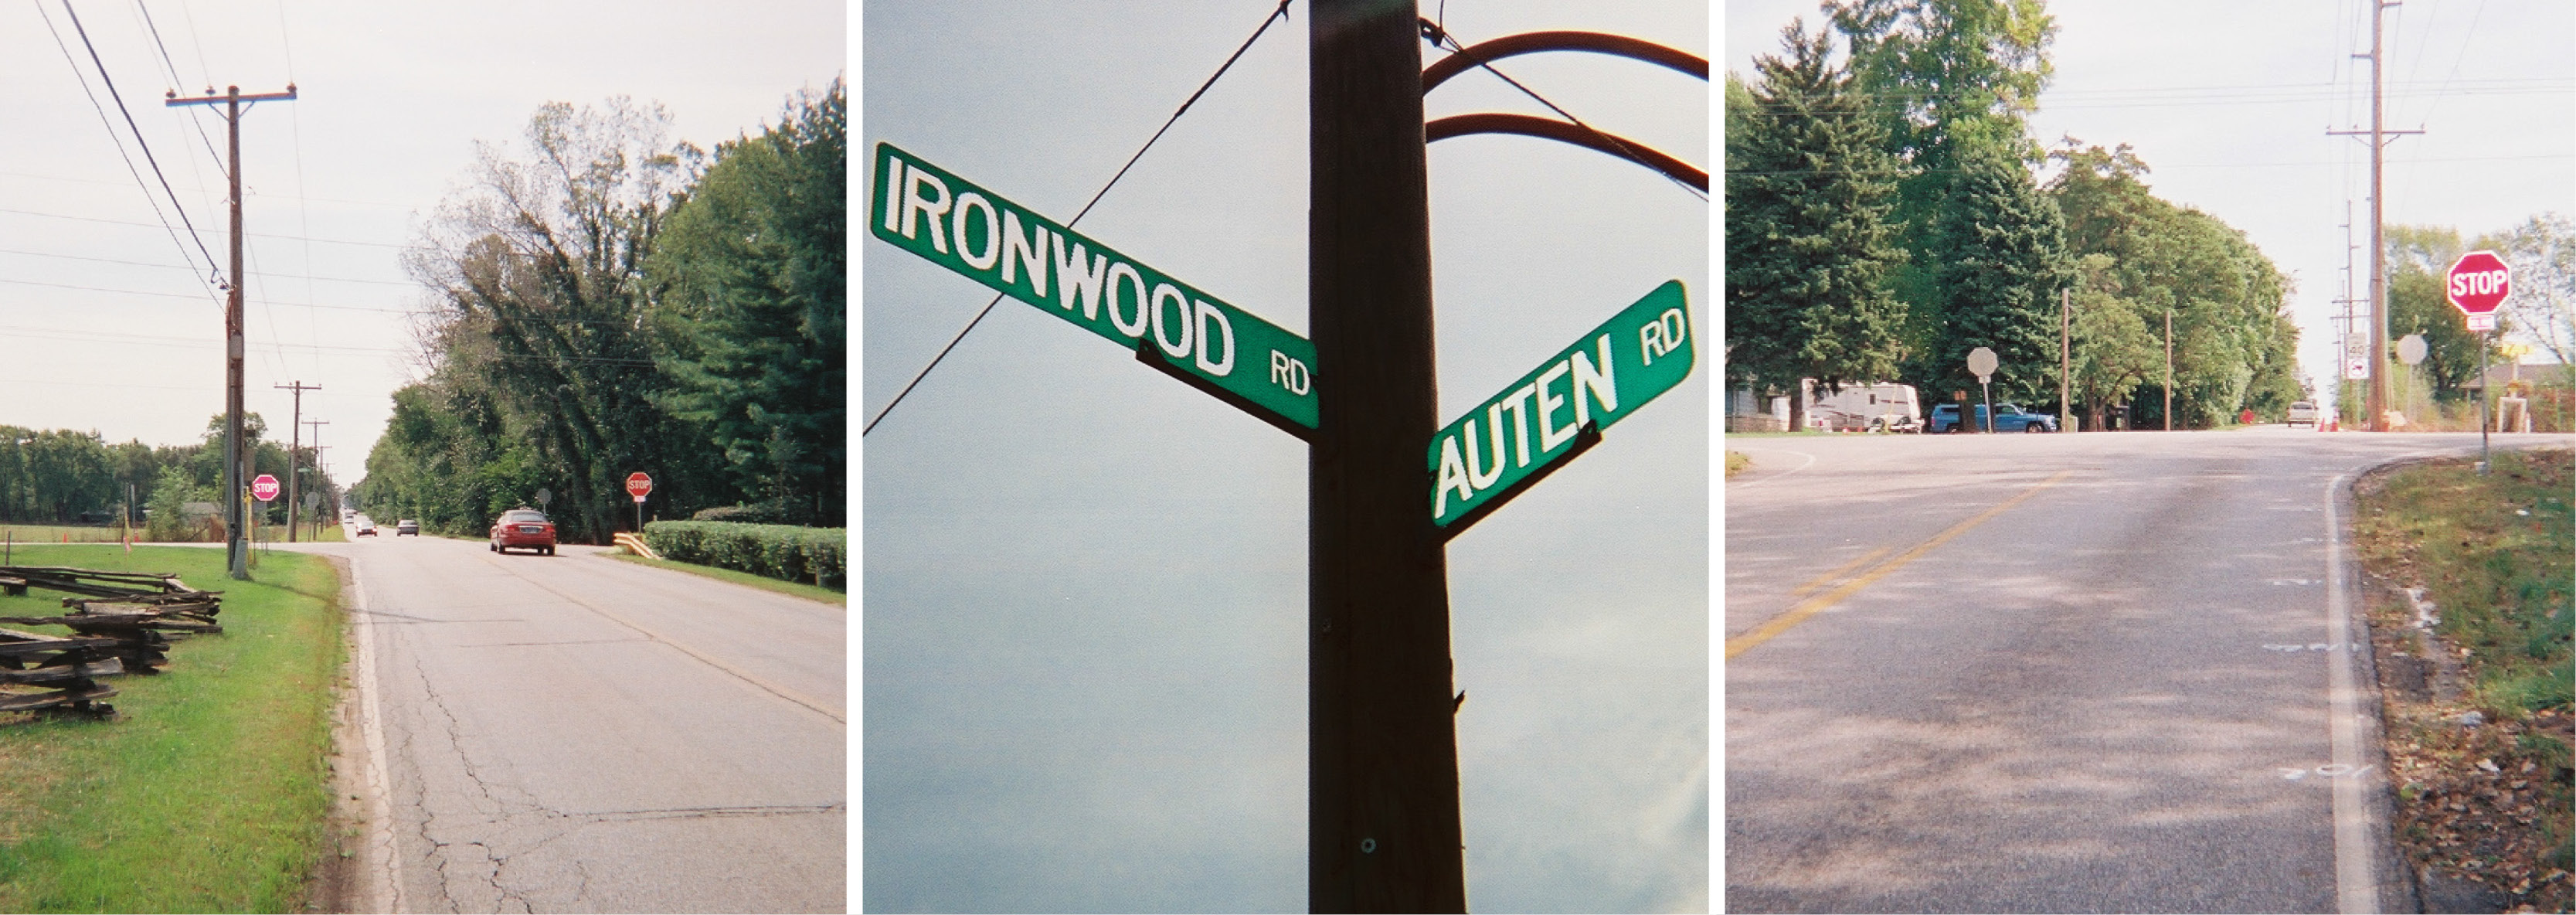 Ironwood and Auten Road Intersection